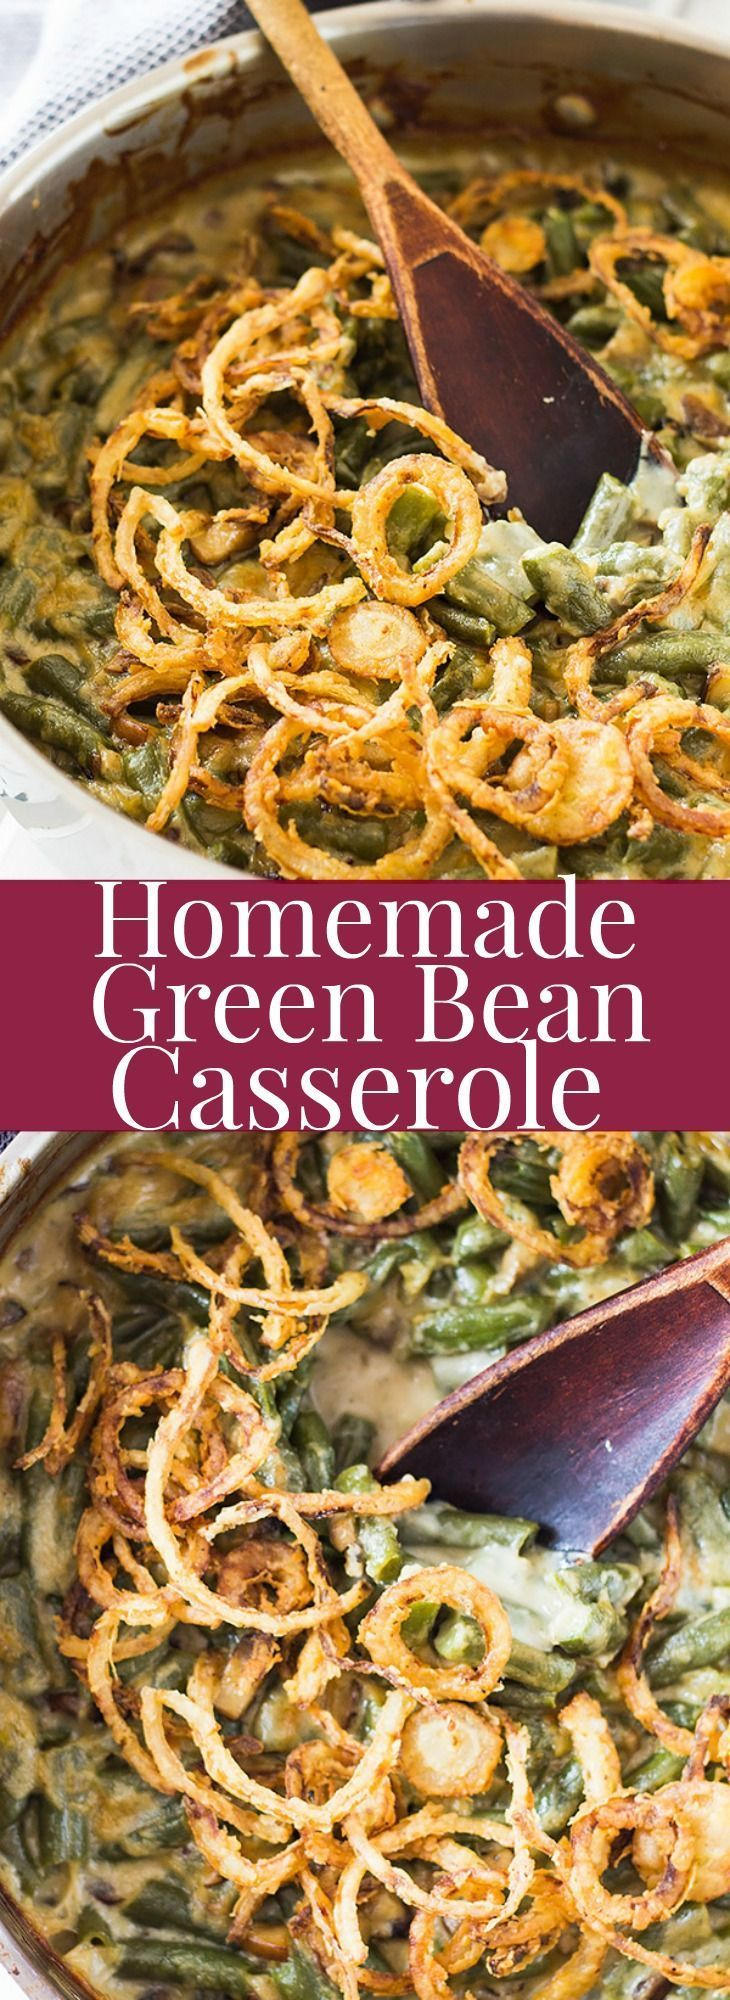 A Homemade Green Bean Casserole that is creamy, full of flavor, and topped with a crispy onion topping!